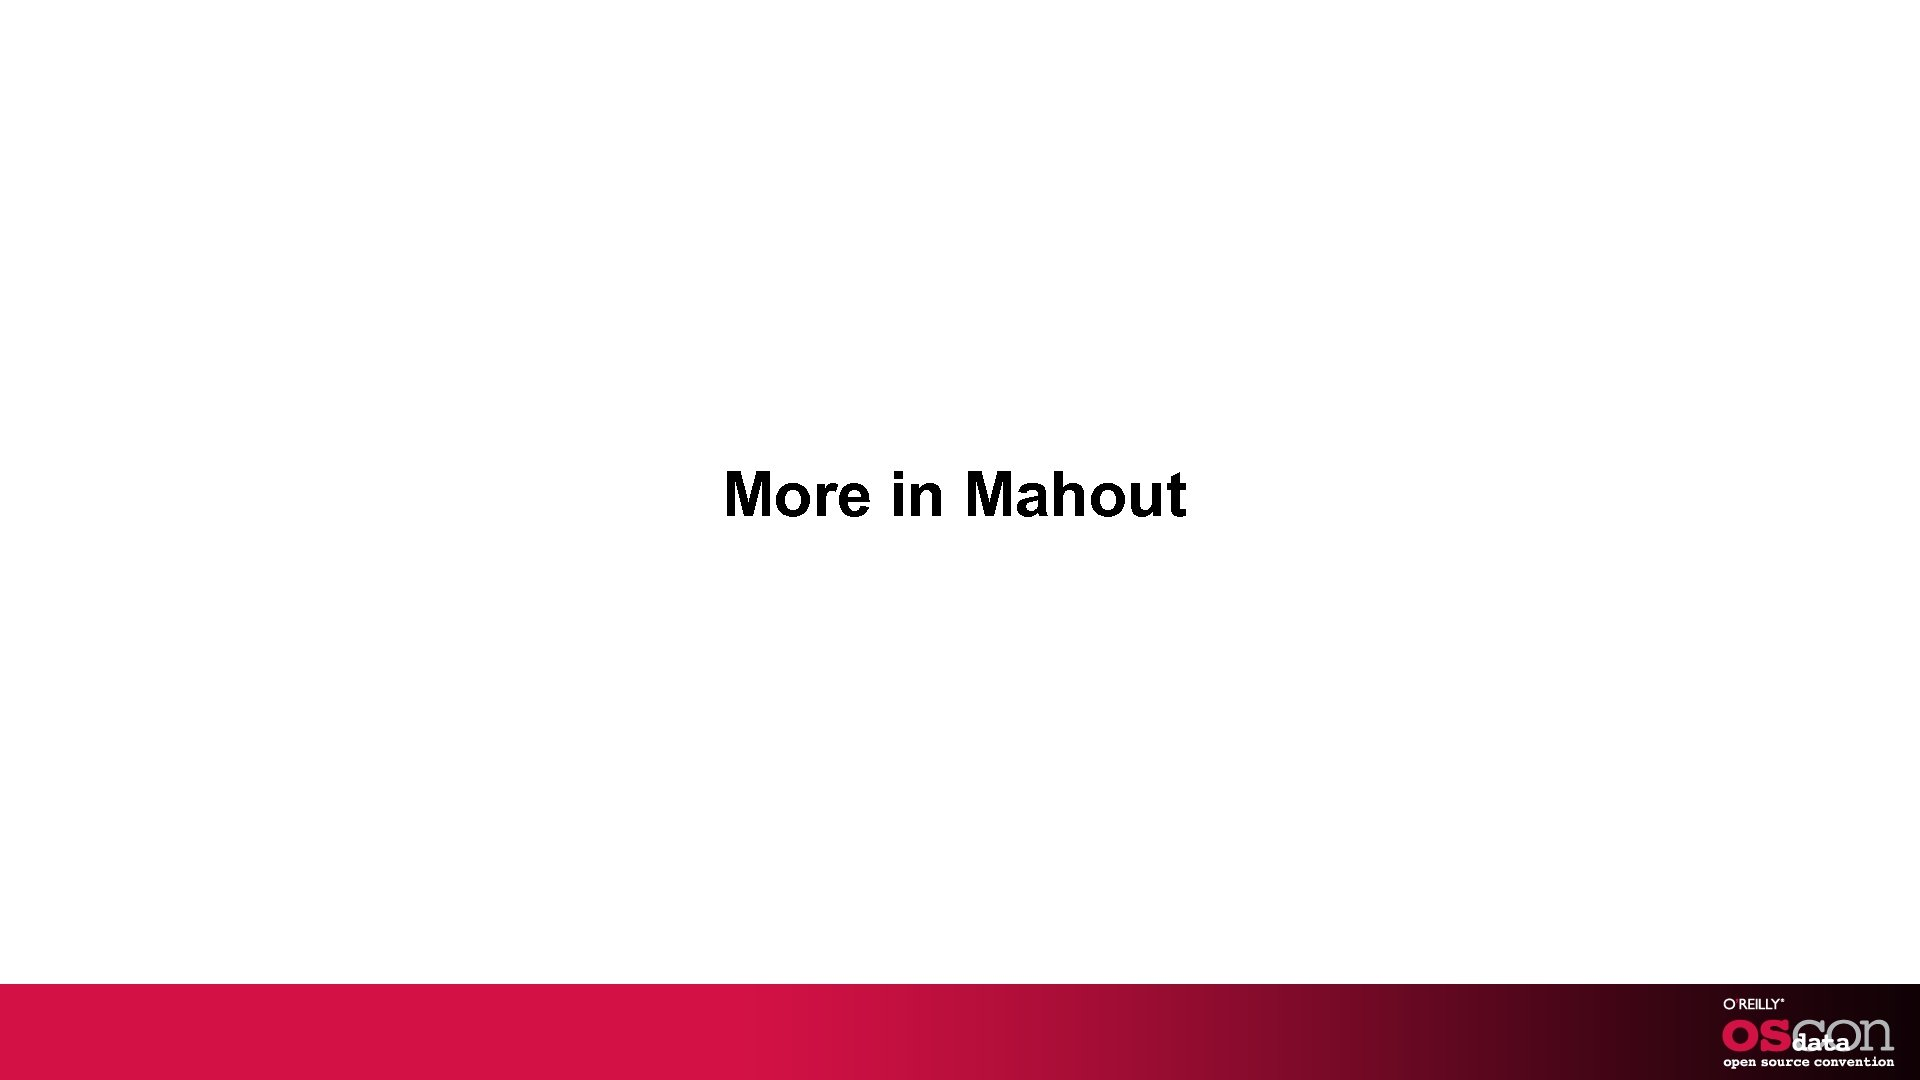 More in Mahout